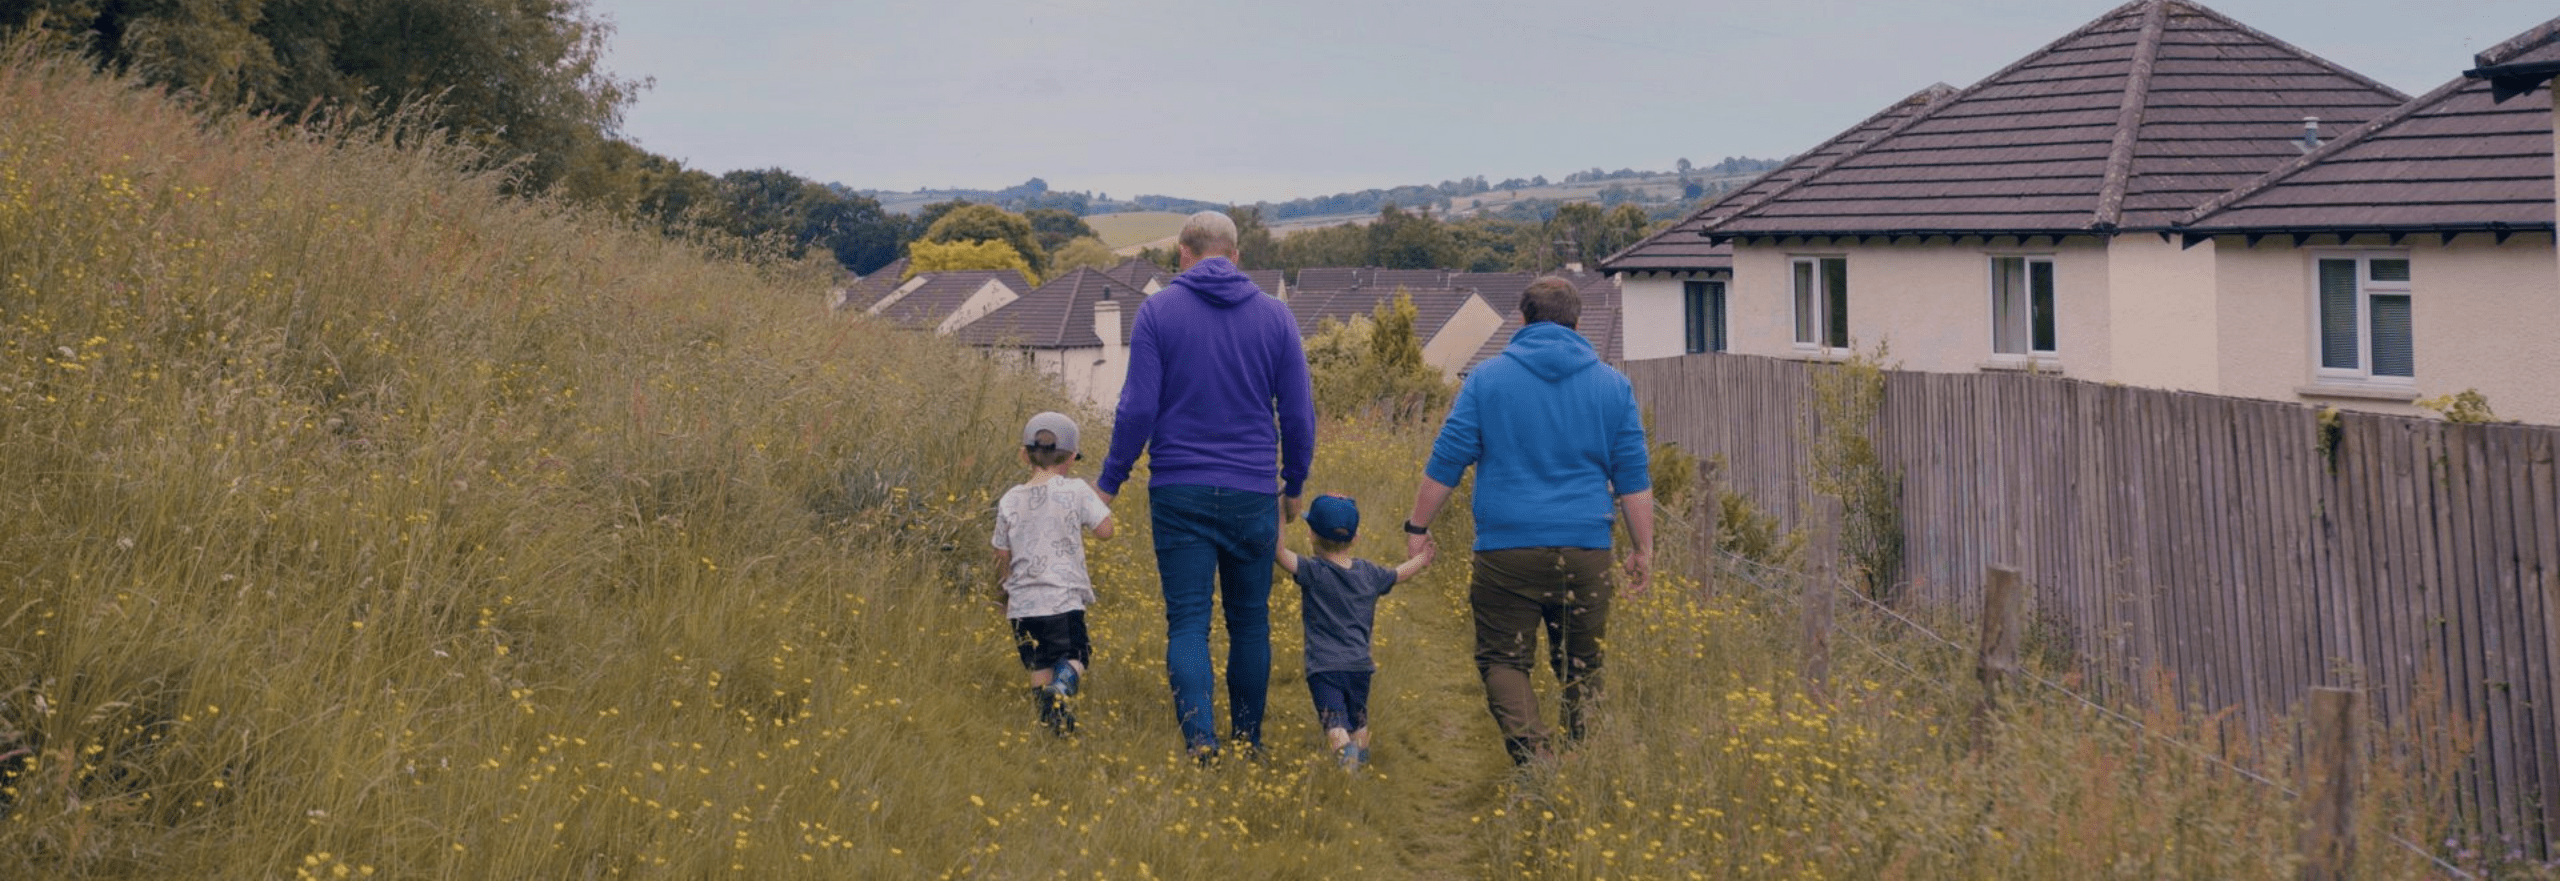 Banner featuring two dads and two boys walking